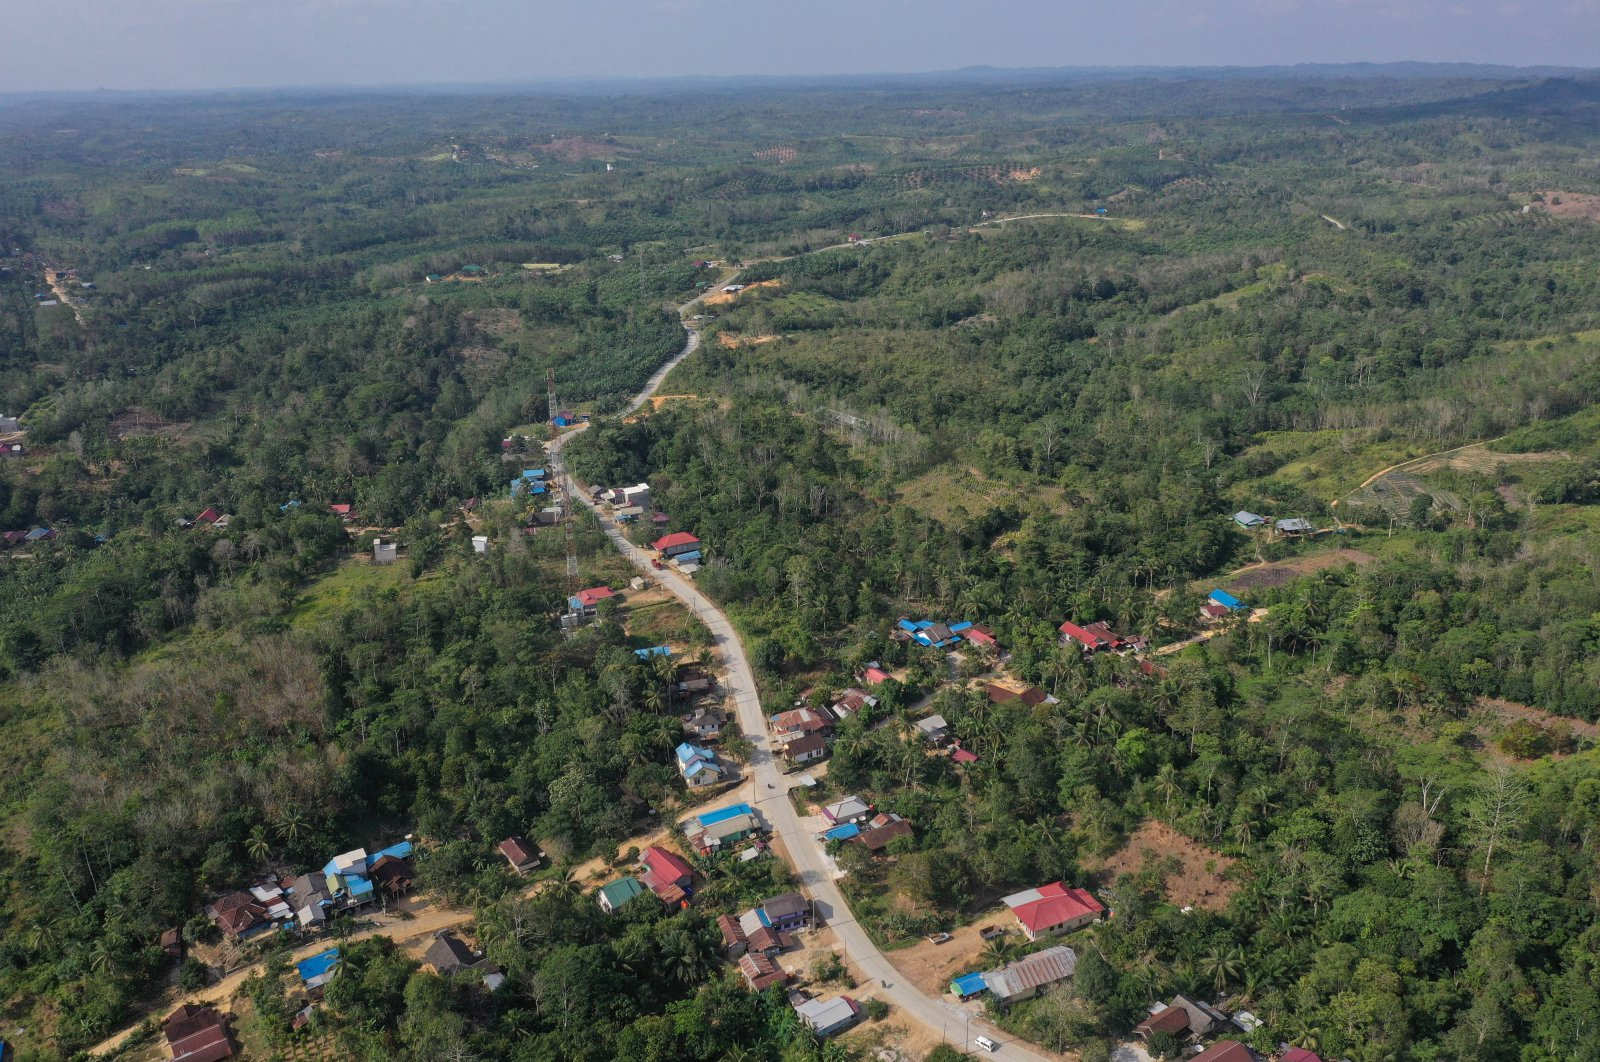 An aerial view of Sepaku district in North Penajam Paser, East Kalimantan province, Indonesia, Aug. 28, 2019. (Reuters Photo)